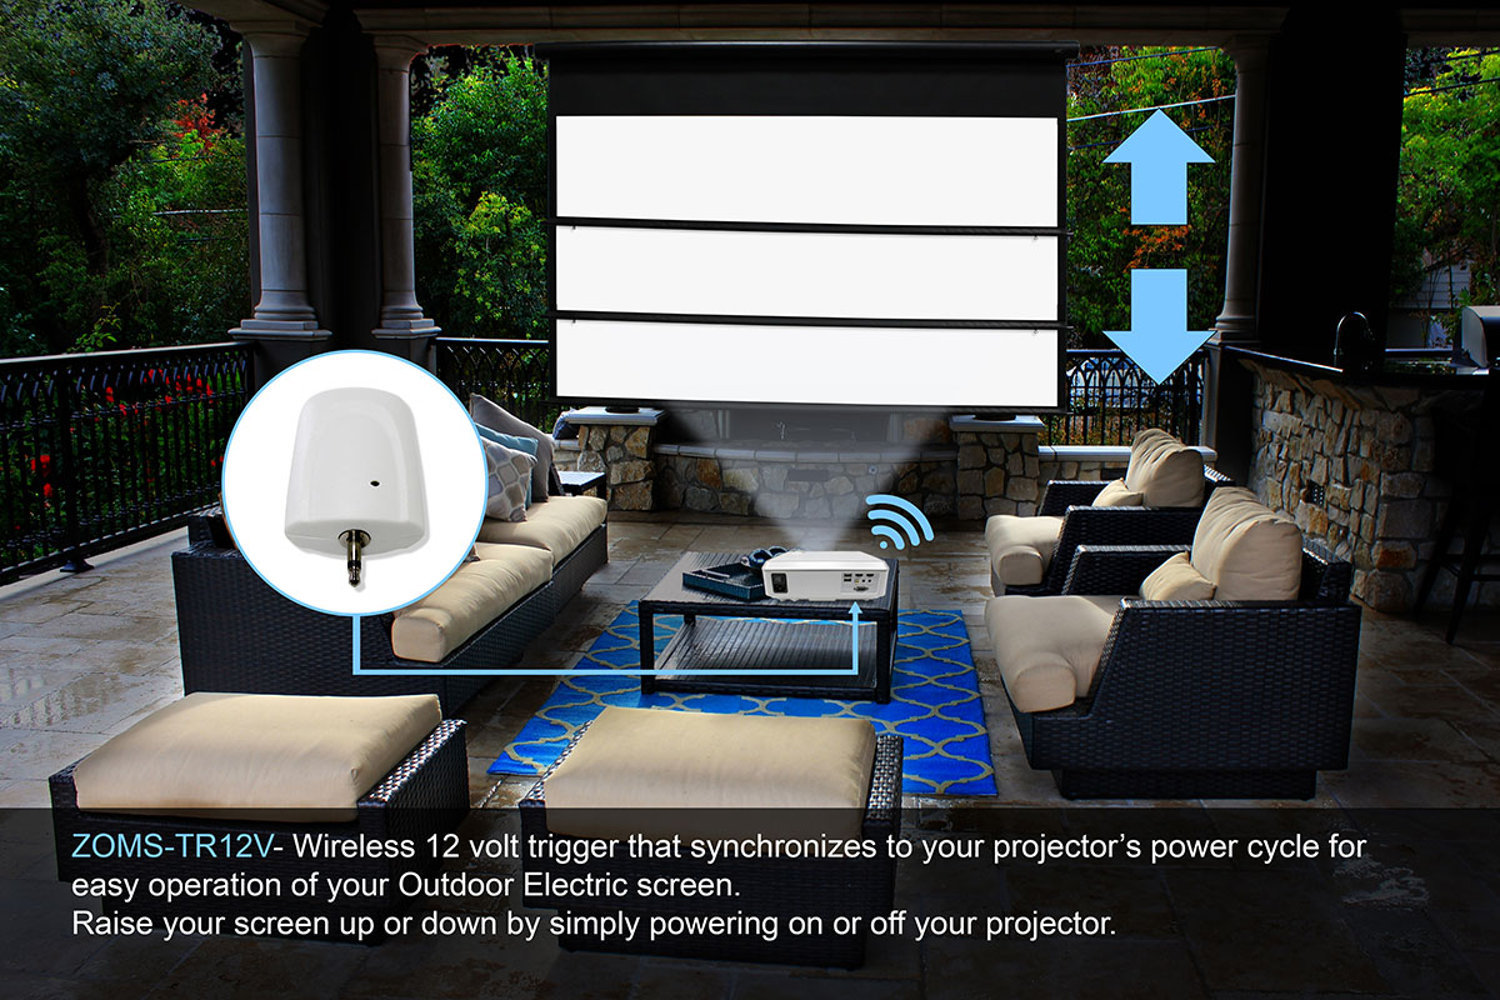 hight resolution of how to sync your projector and screen without any wires